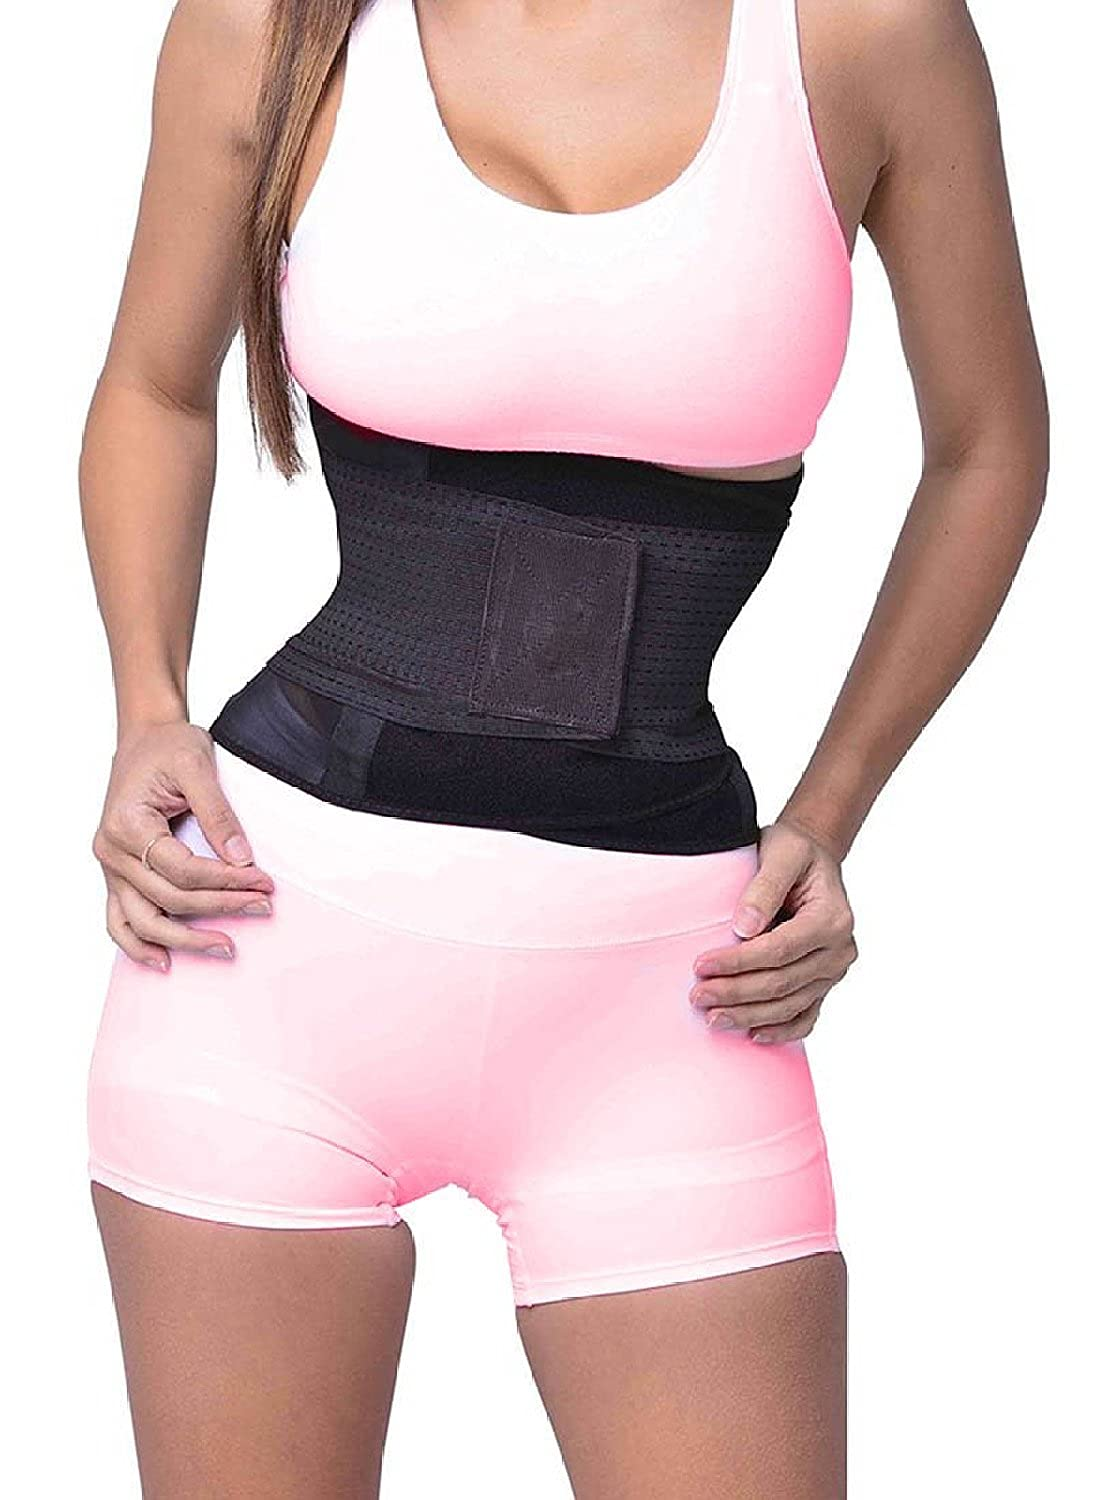 Exercise Belt For Waist - All The Best Exercise In 2018